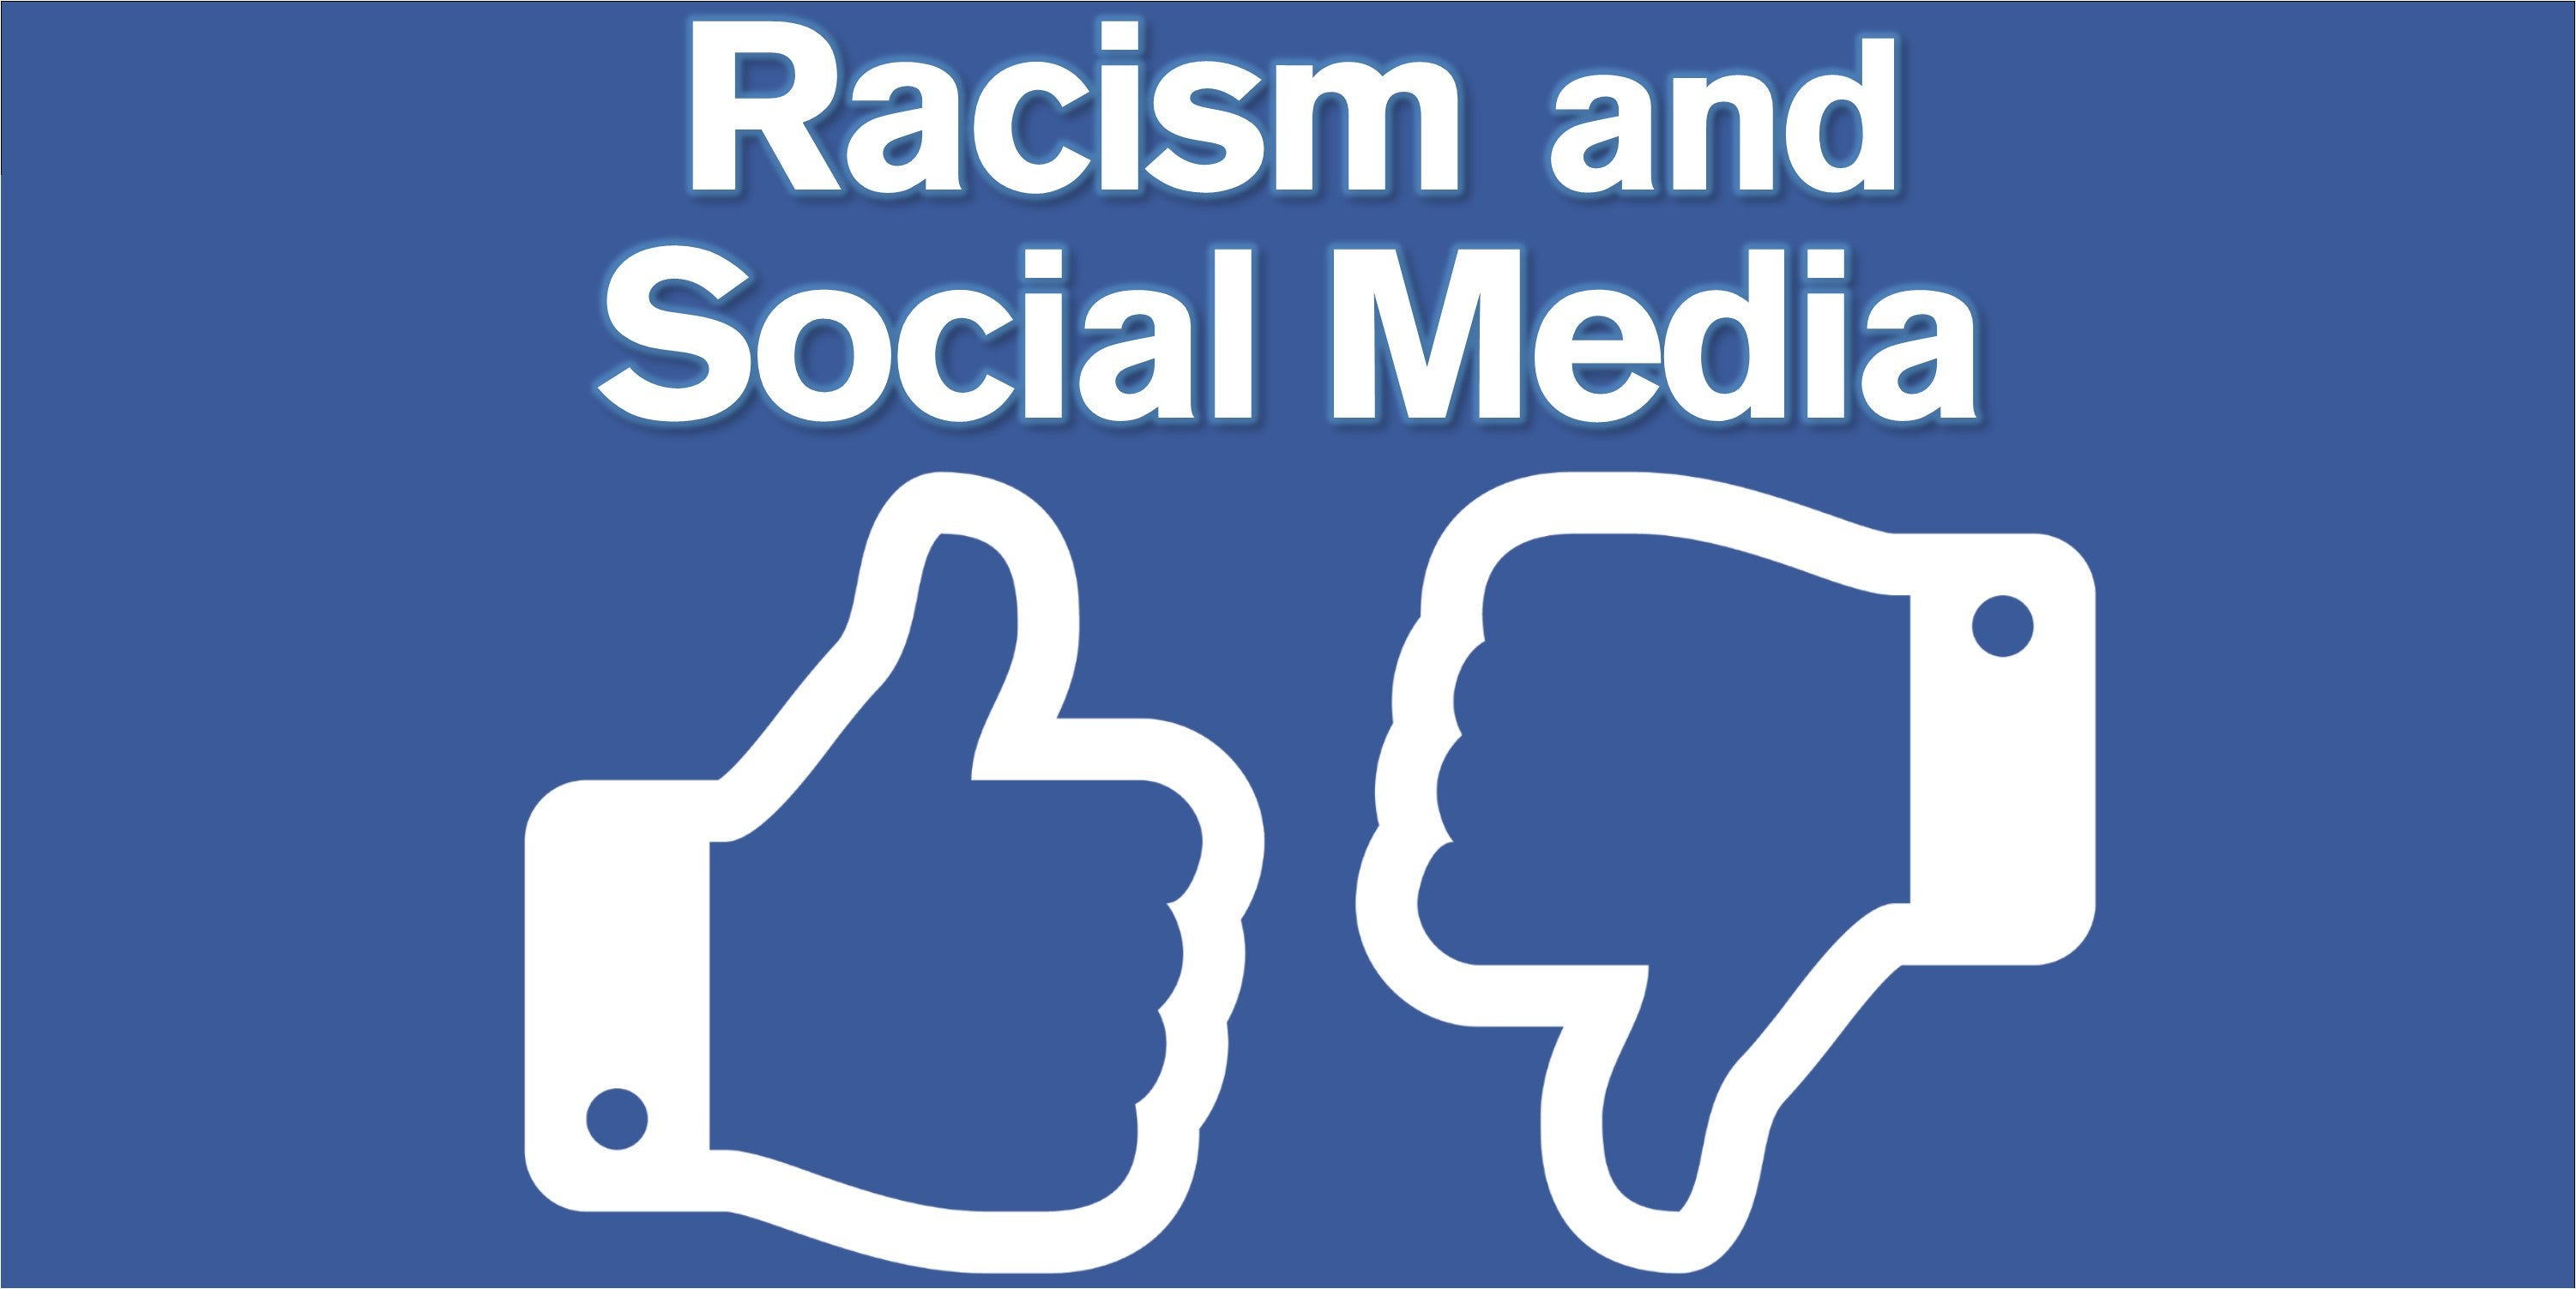 Racism and Social Media event image